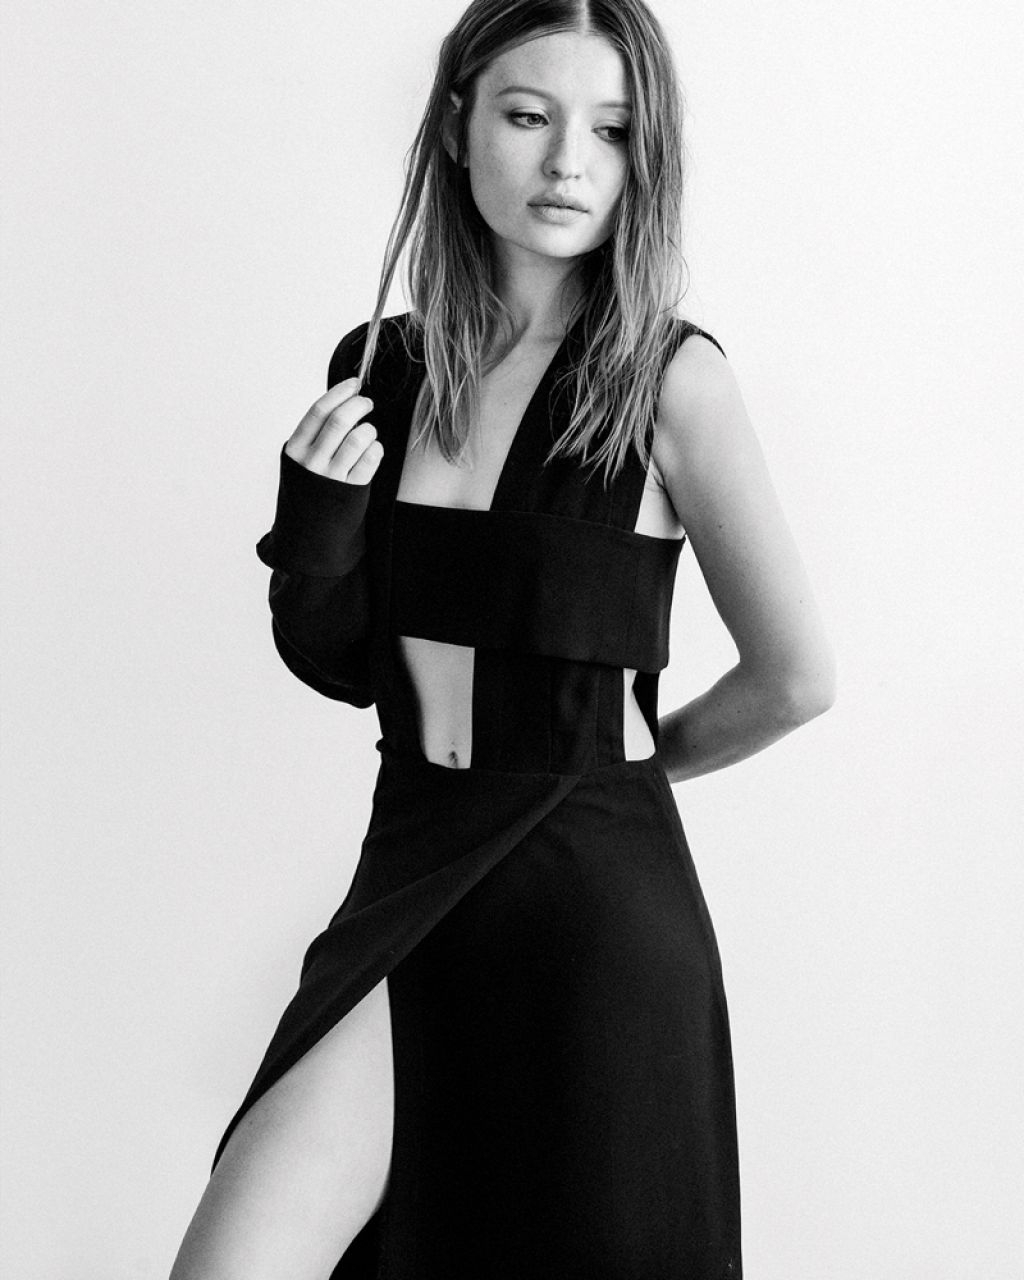 Emily browning photoshoot for interview magazine october 2015